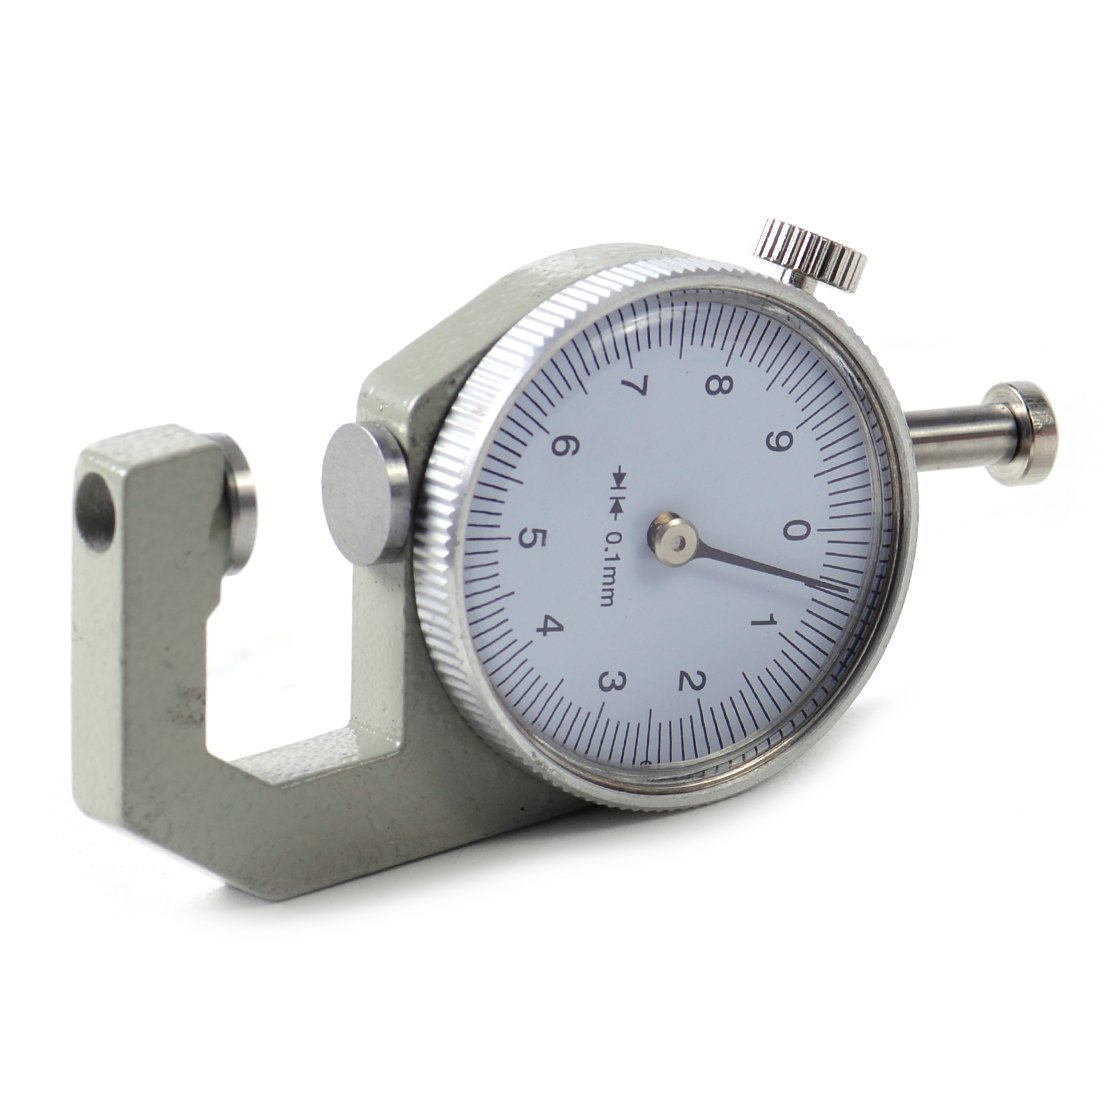 0-10mm Thickness Round Dial Gauge Gage Tester Tool Weekly update Leath Max 80% OFF Measure